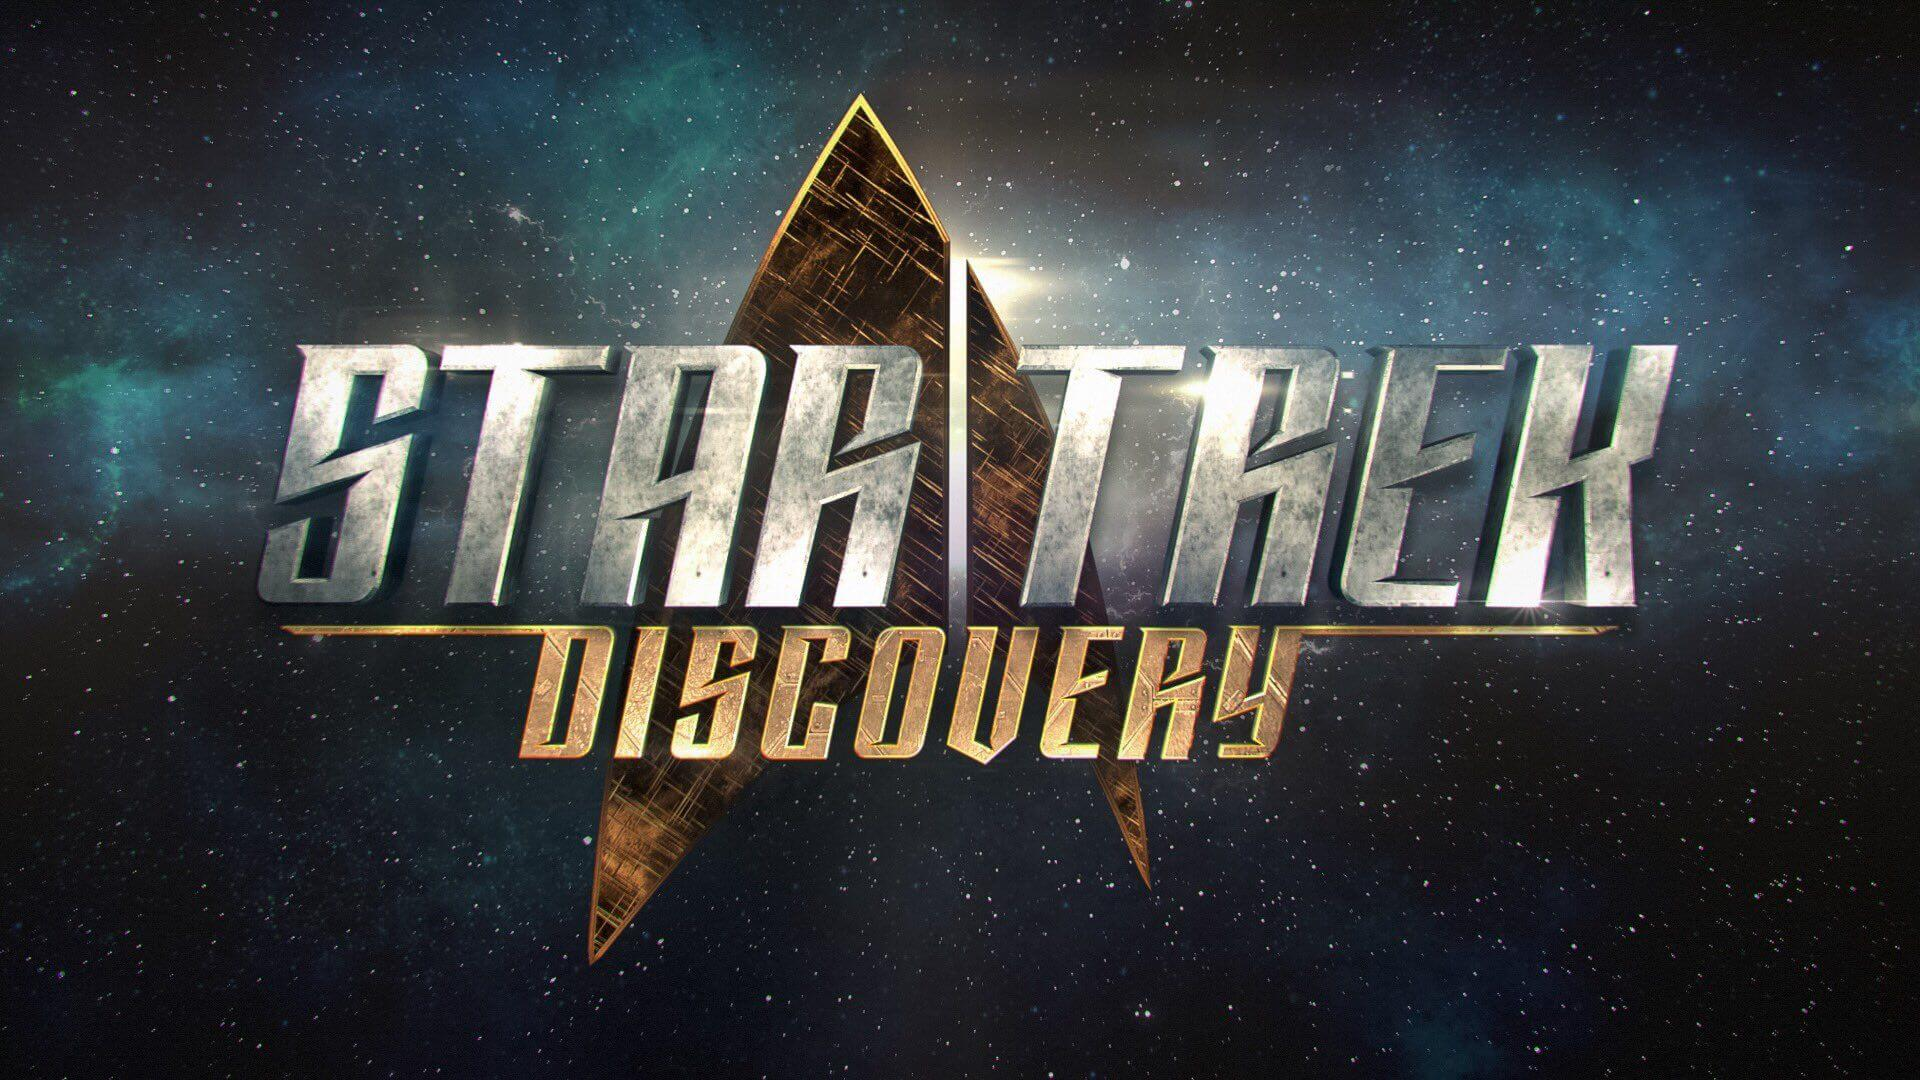 Star Trek: Discovery Making Its Way to UK's Channel 4